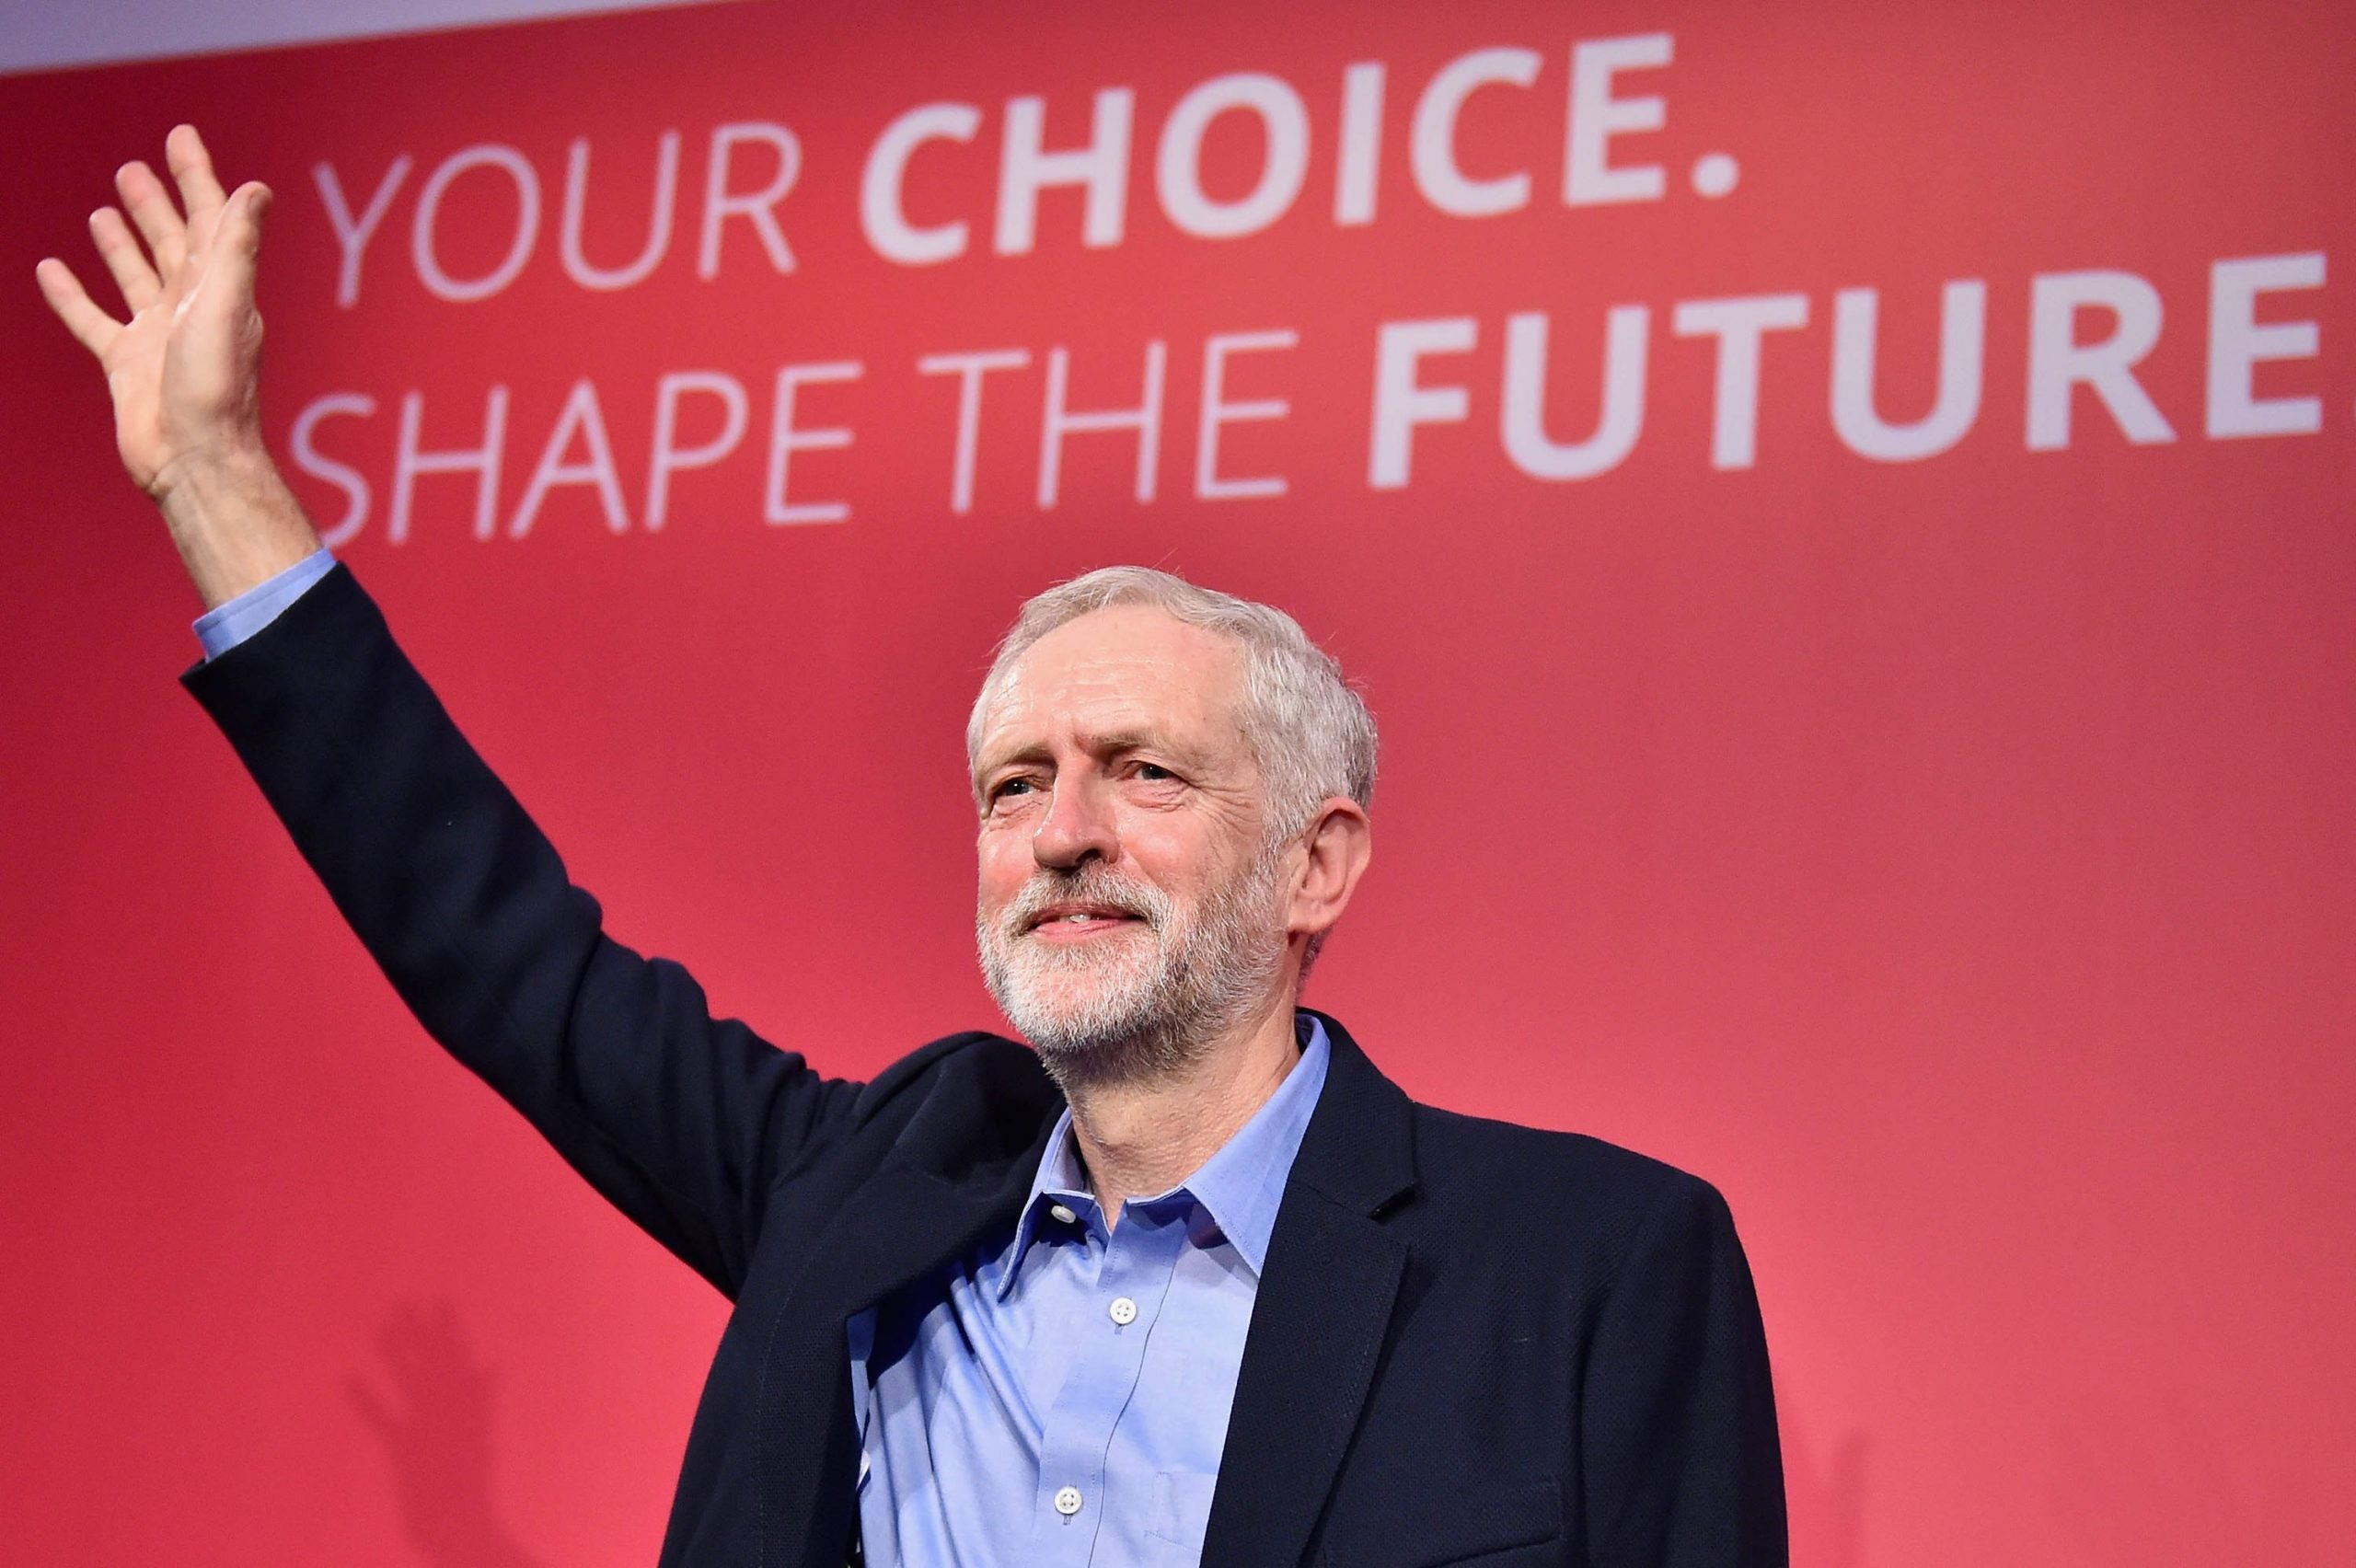 If Jeremy Corbyn is to succeed, he's got to ride the wave